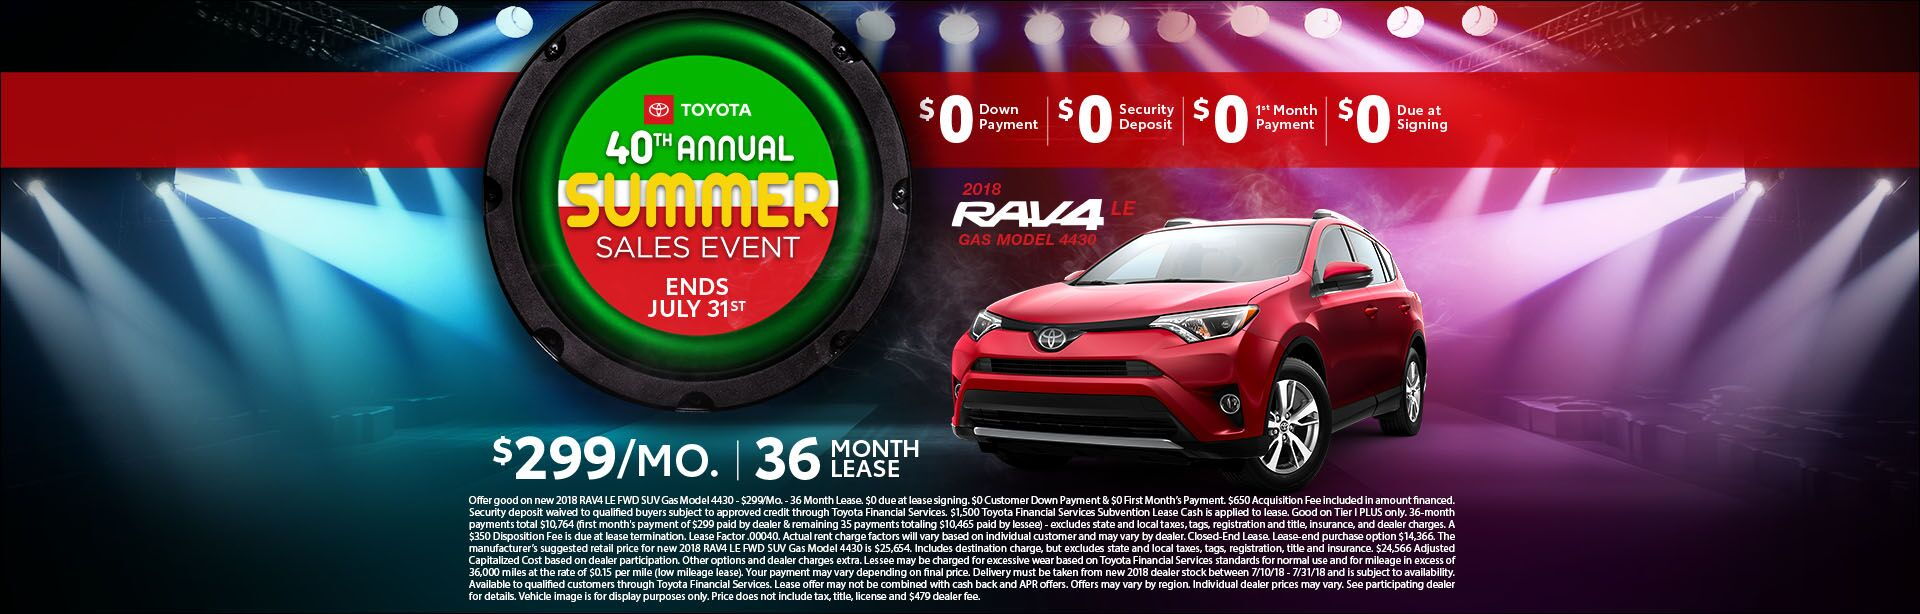 Toyota - Summer Sales Event